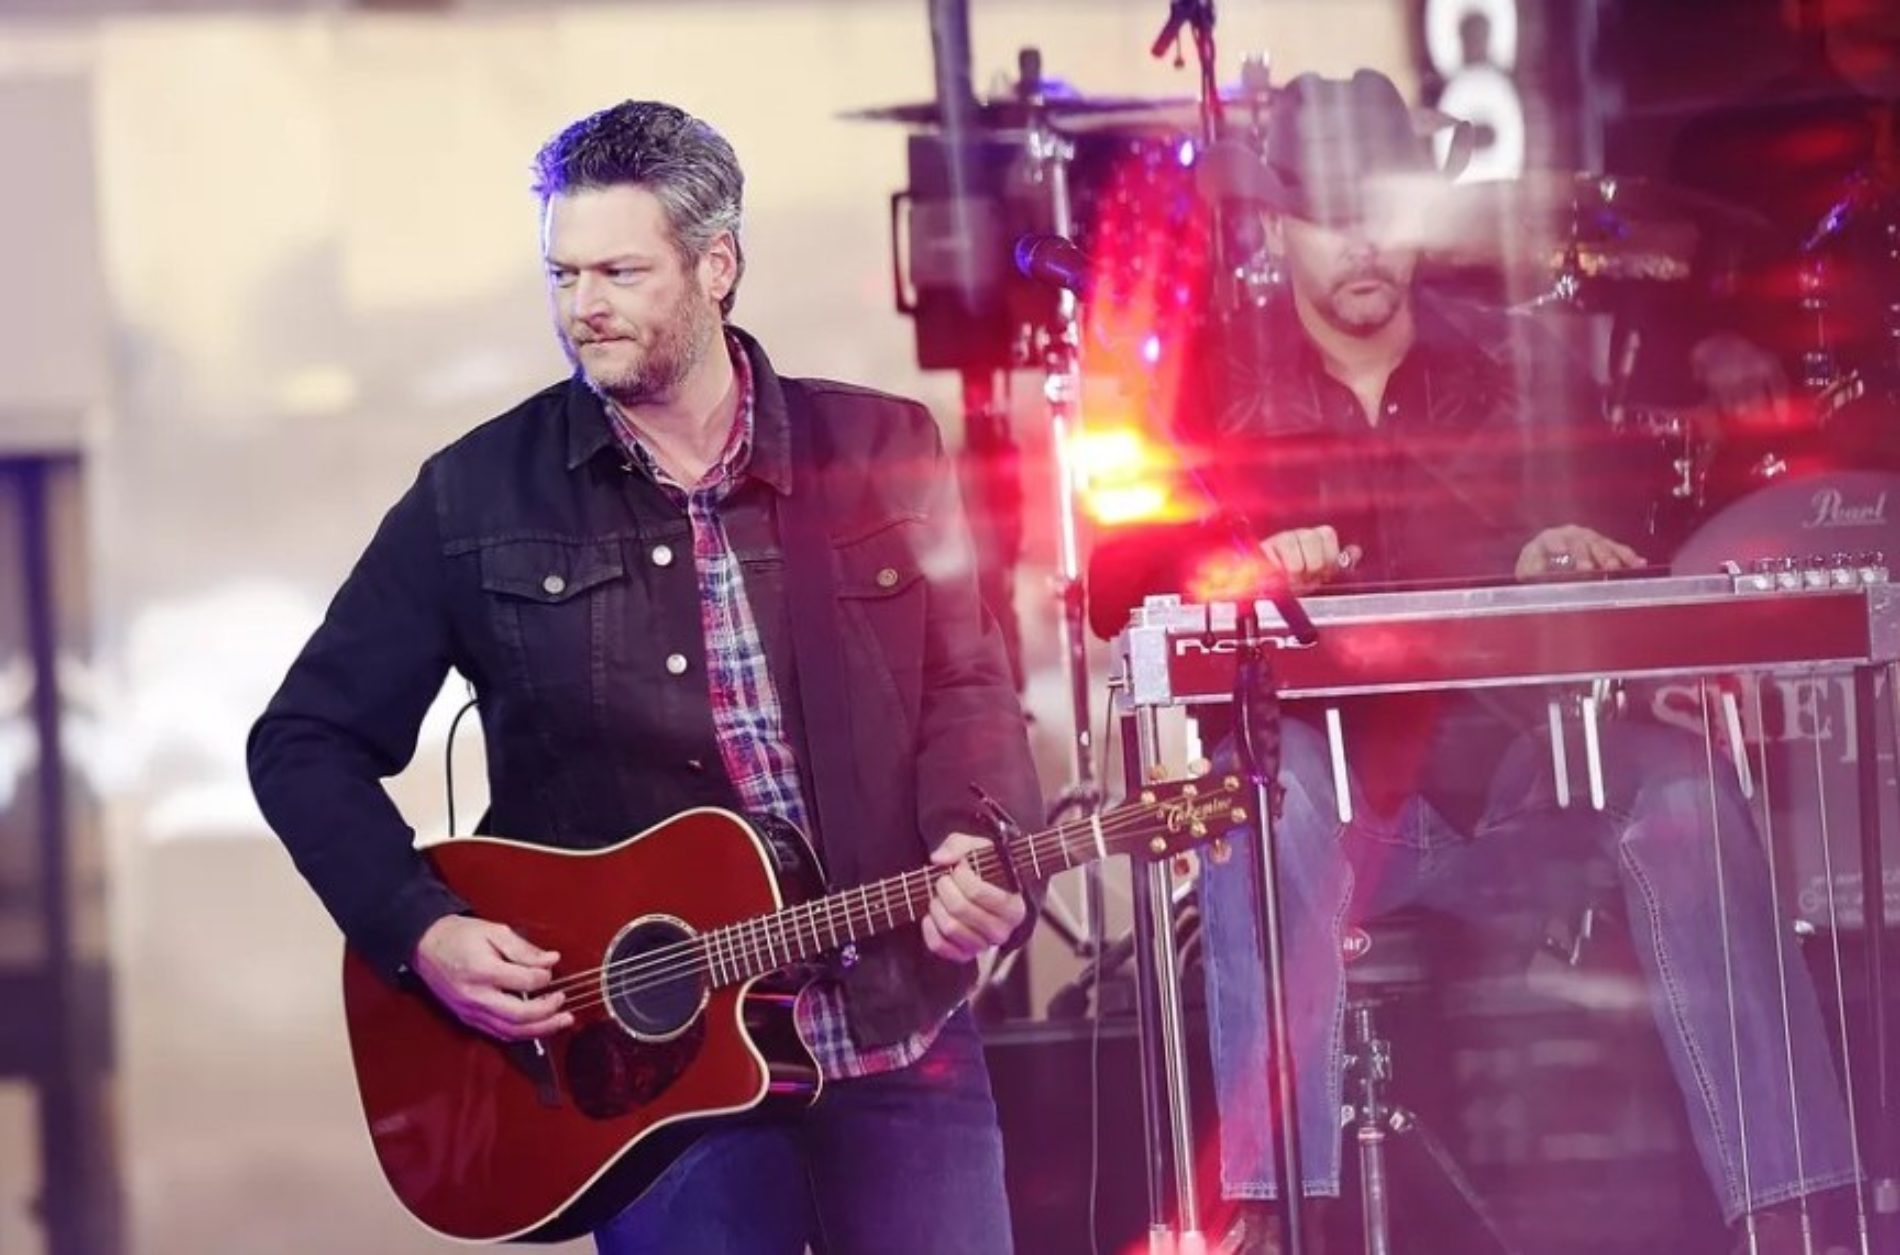 """Blake Shelton is People magazine's """"Sexiest Man"""" of 2017. And the internet isn't having it."""